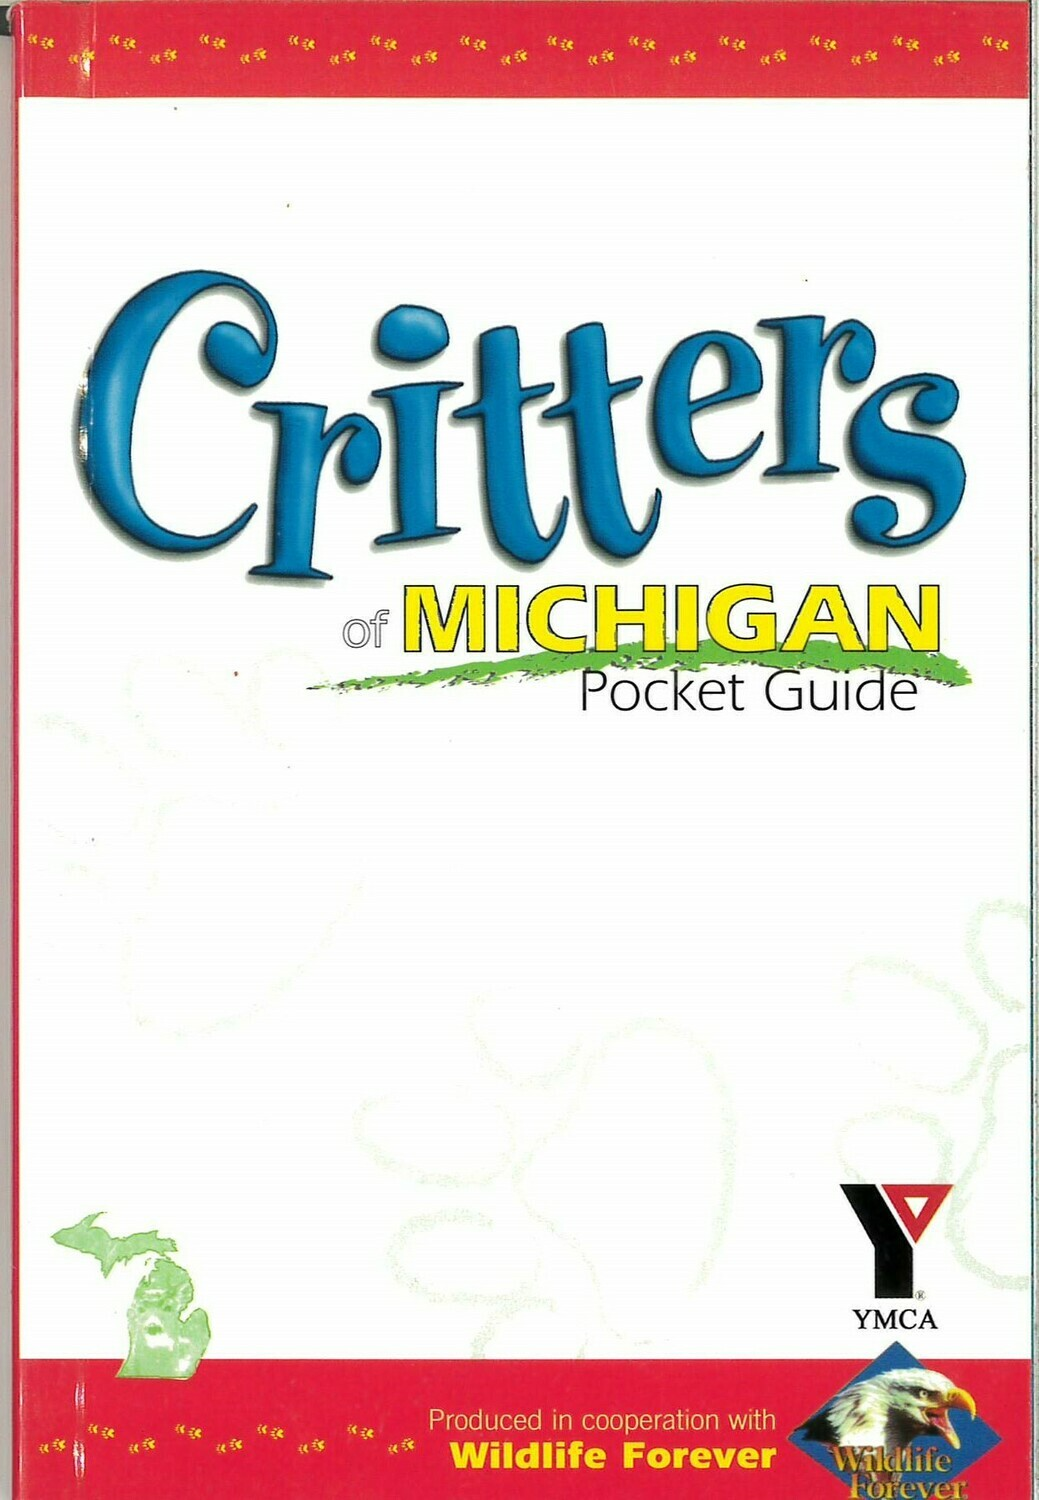 Critters of Michigan Pocket Guide